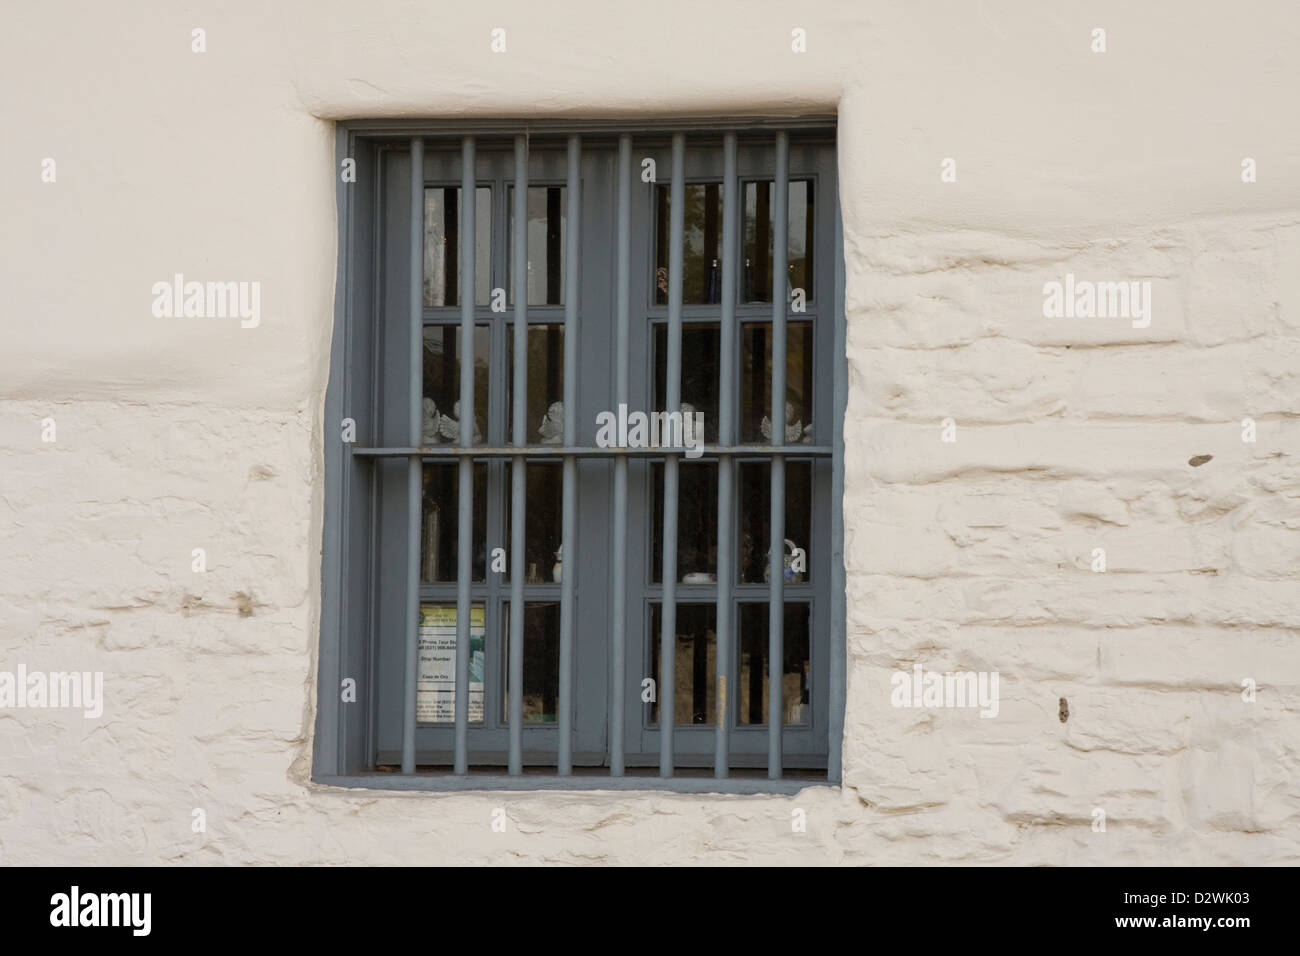 A barred window in an old building near Old Fisherman's Wharf in Monterey, California. - Stock Image